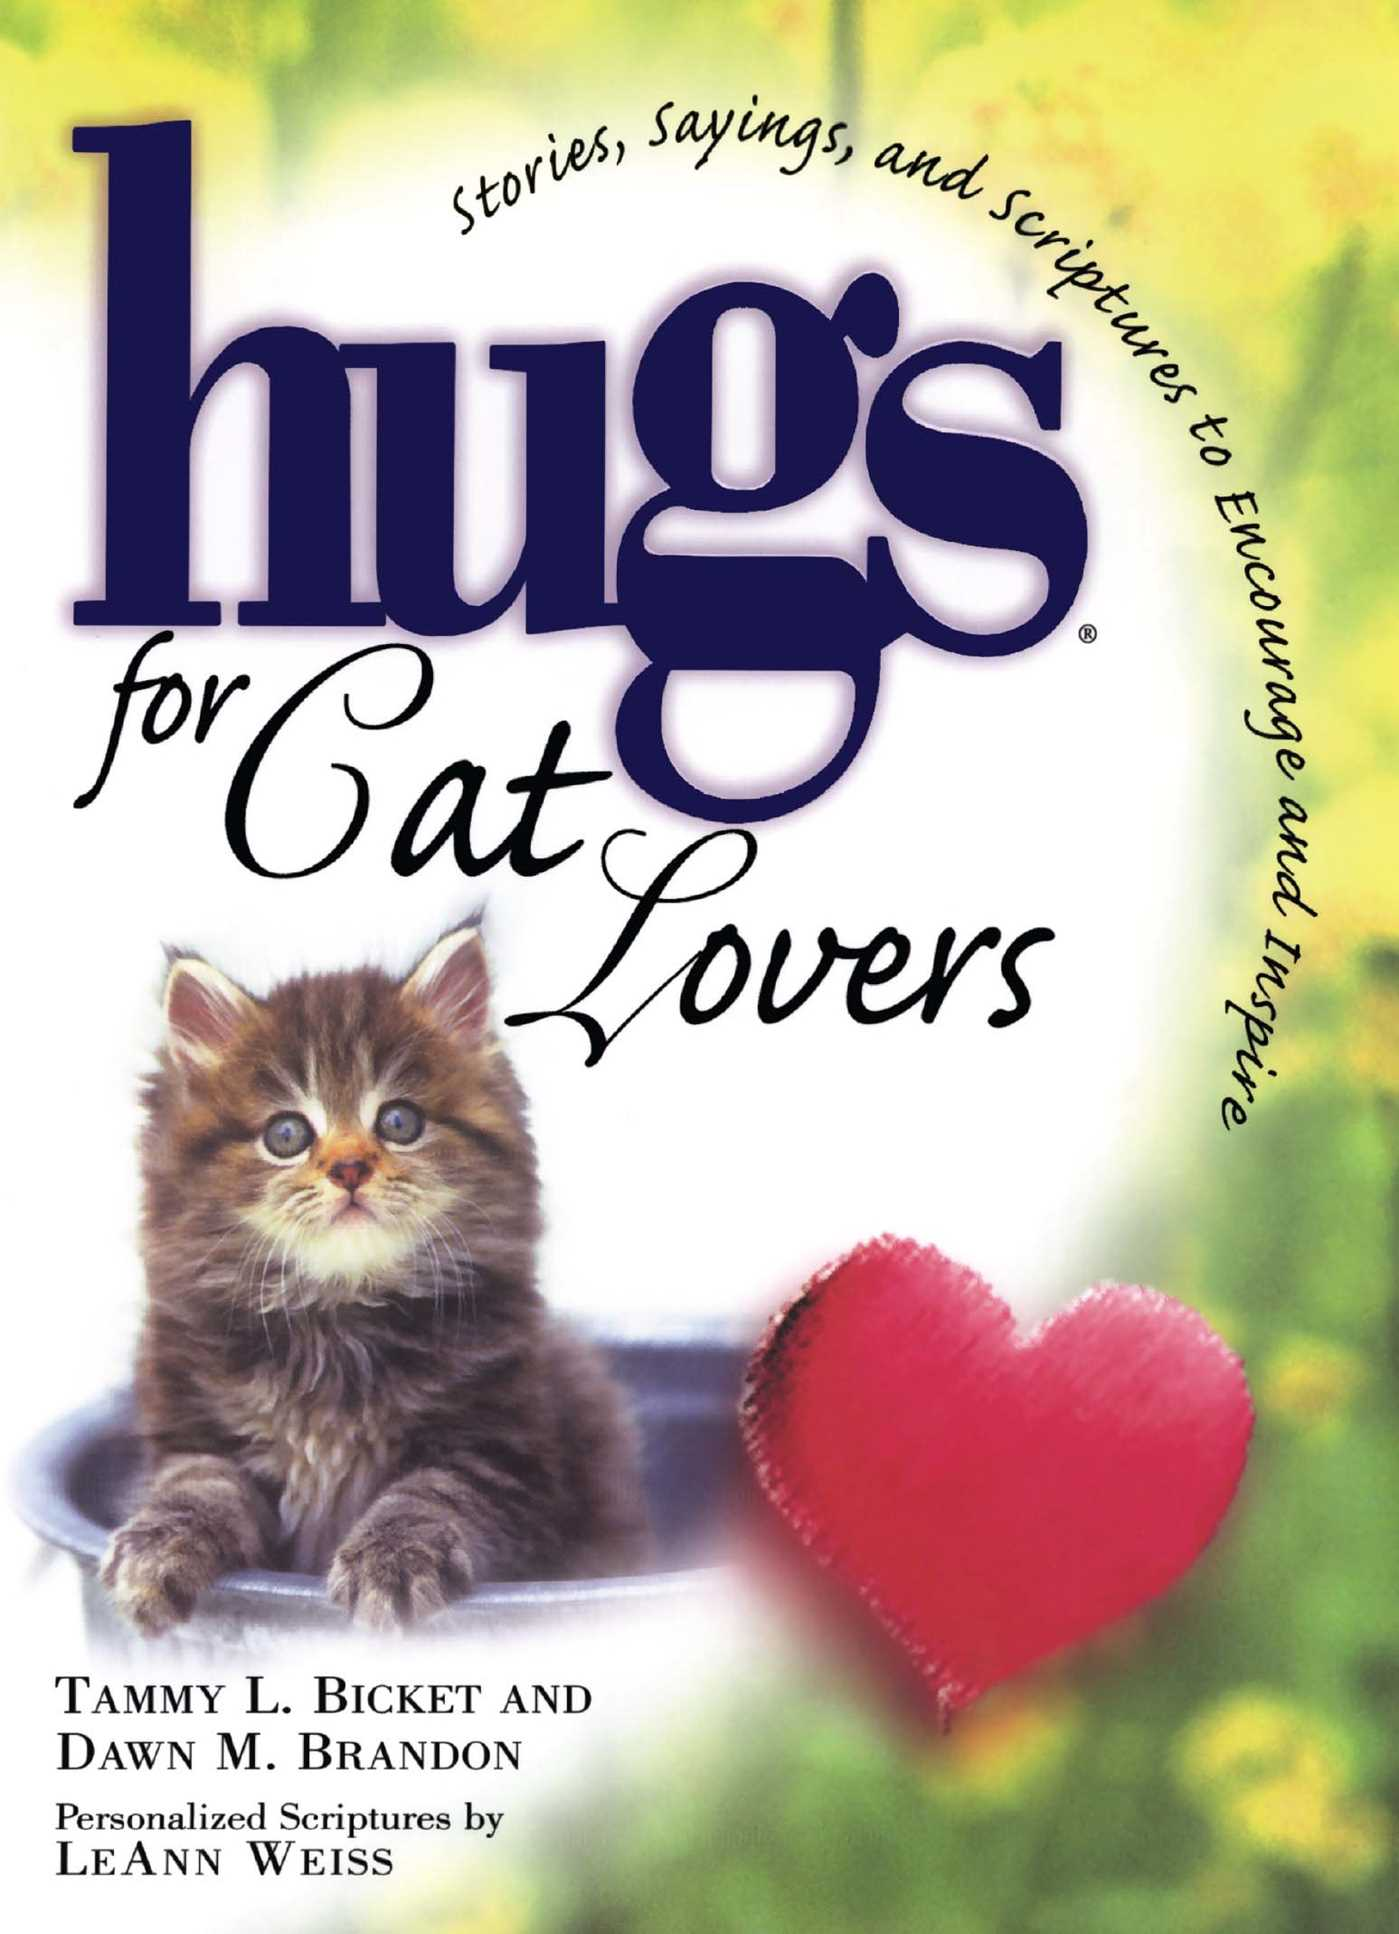 Hugs for cat lovers 9781476751436 hr